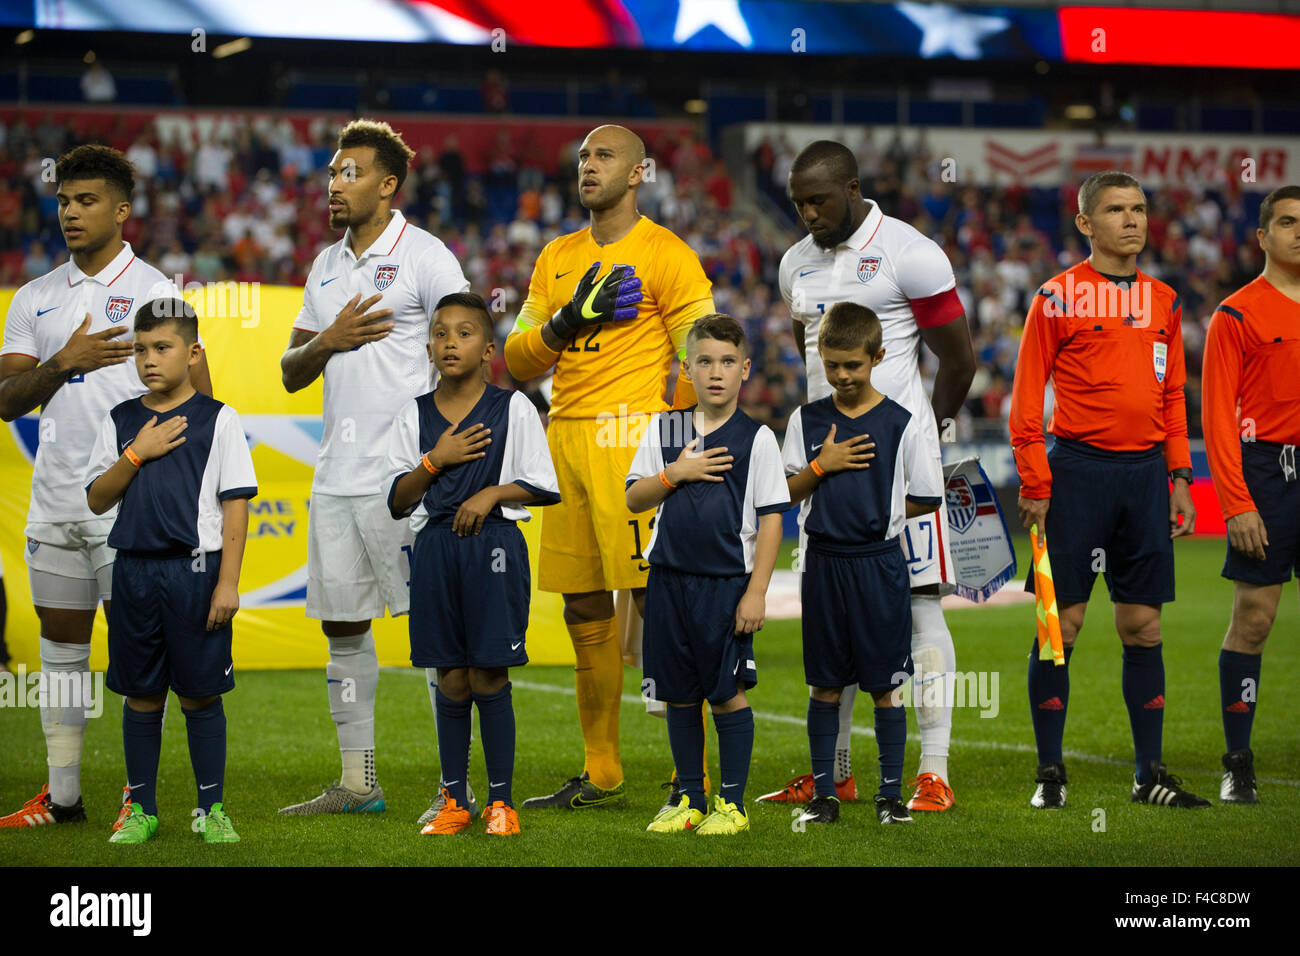 October 13, 2015: USA goalkeeper Tim Howard (12) and USA forward Jozy Altidore (17) stand during The National Anthem - Stock Image